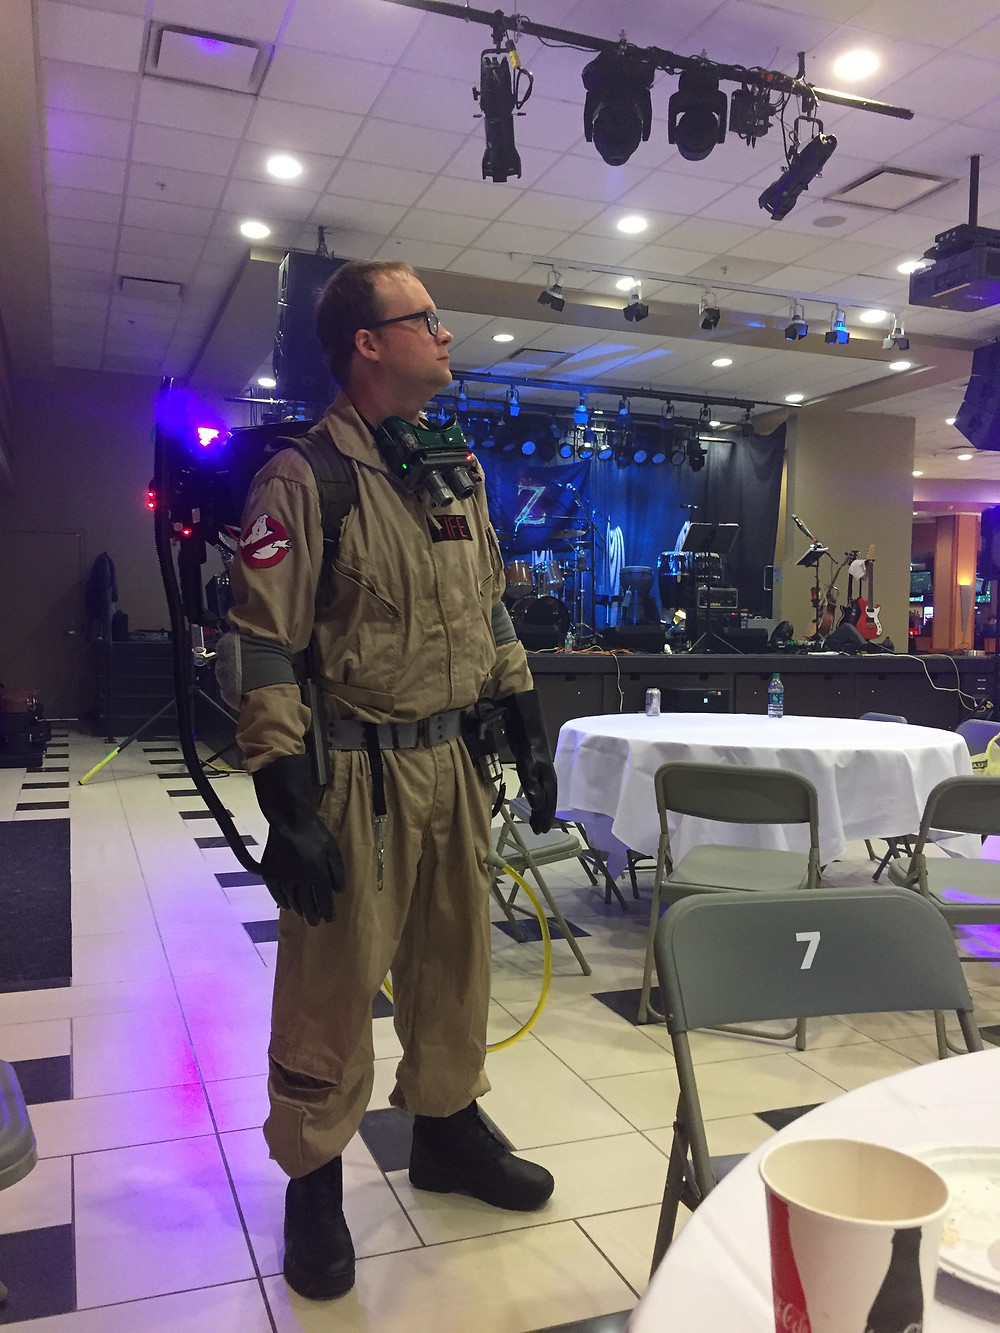 Ghostbuster cosplay at Tioga Downs Casino, Nichols, NY.